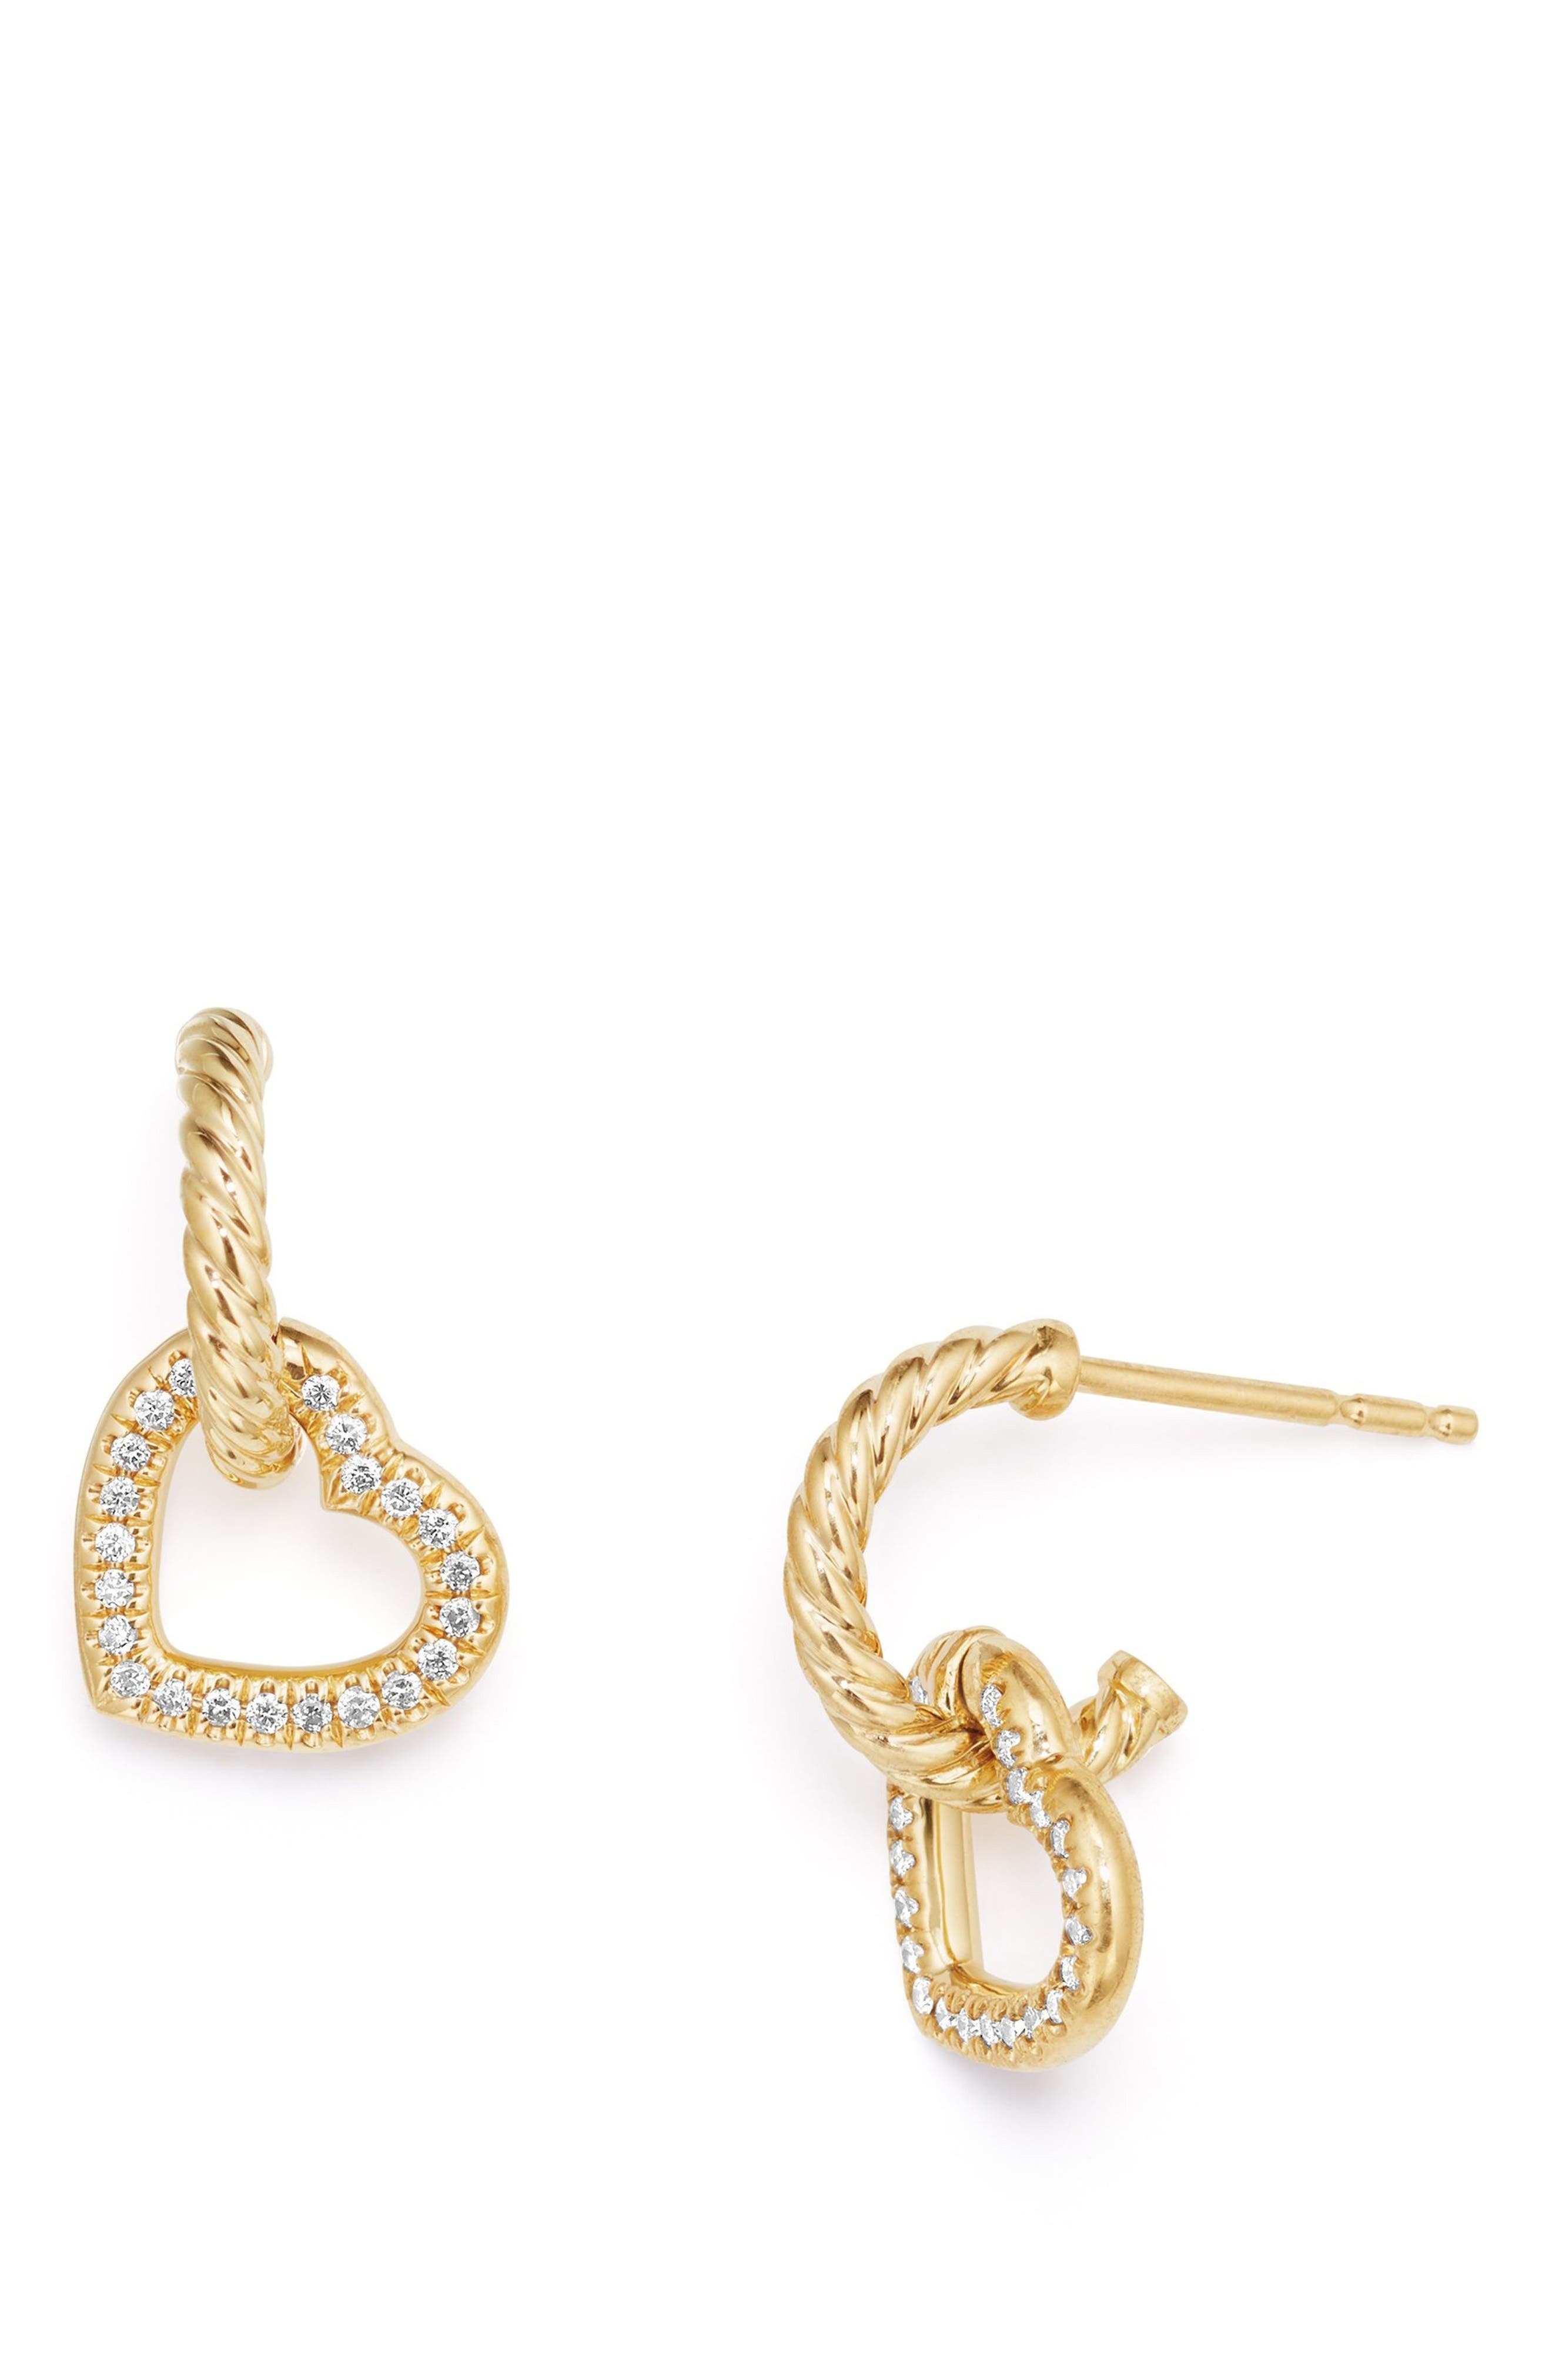 Heart Drop Earrings with Diamonds in 18K Gold,                         Main,                         color, Gold